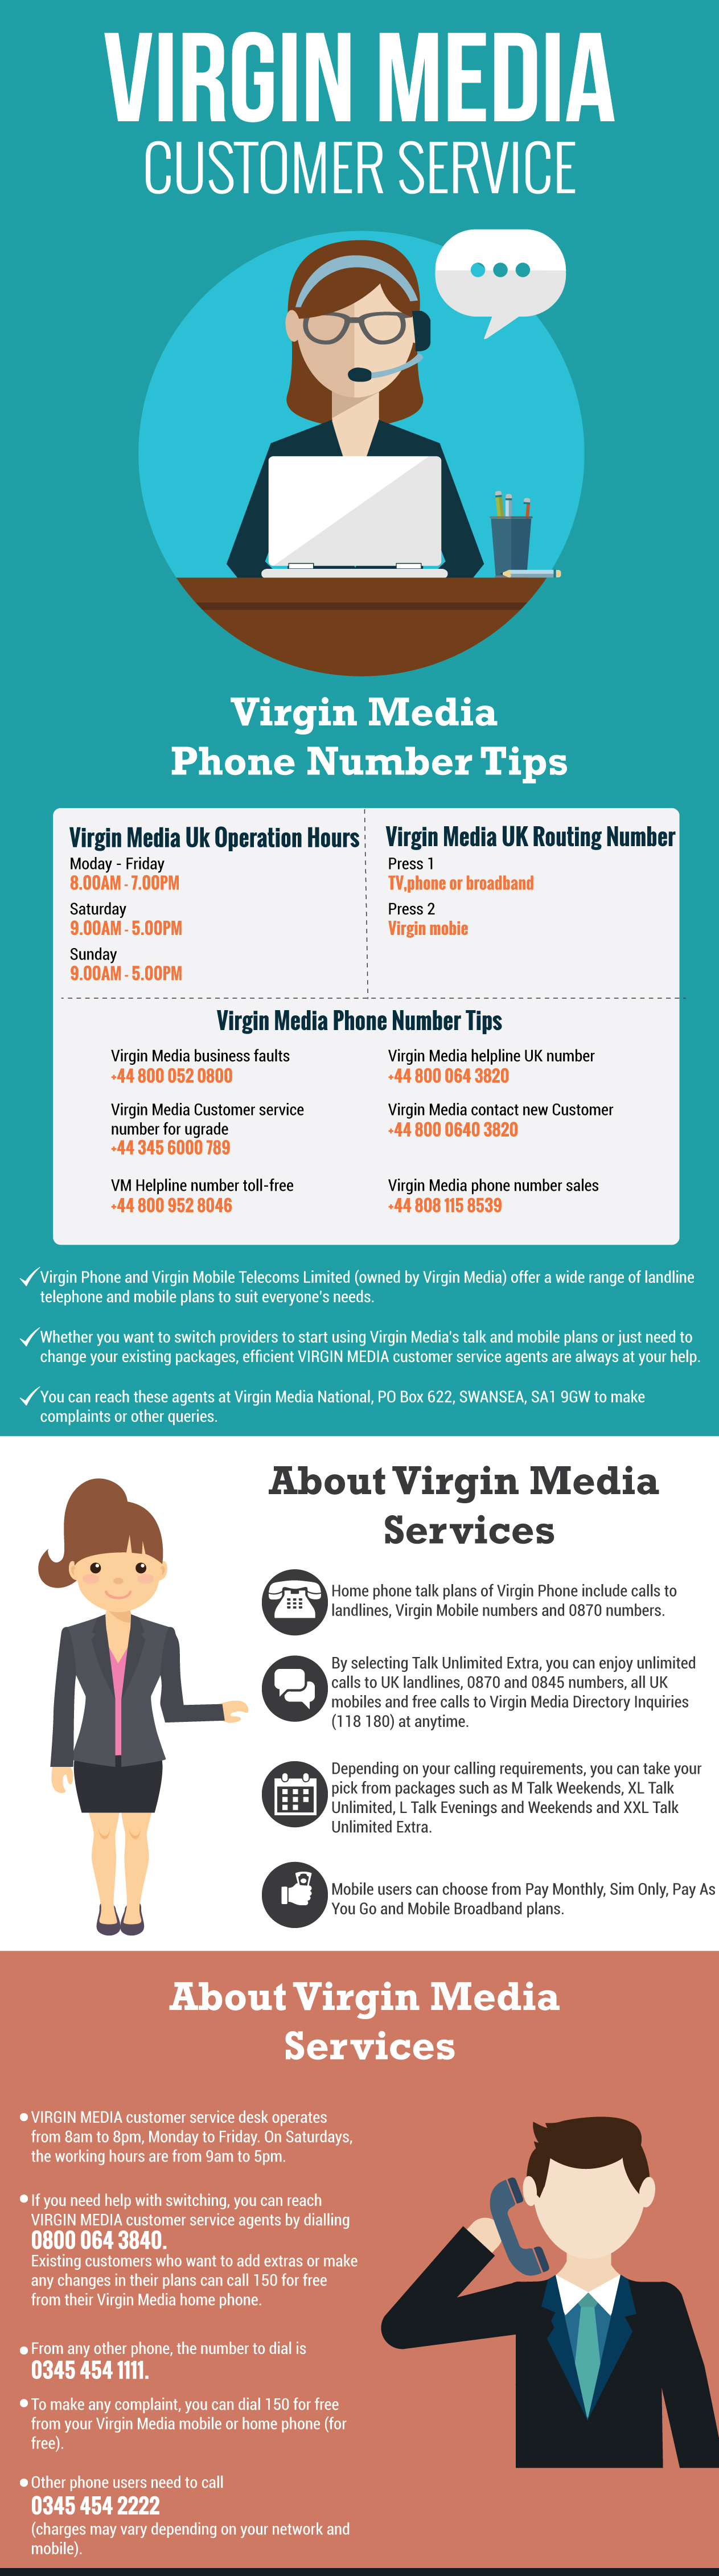 Virgin Media TV Helpline